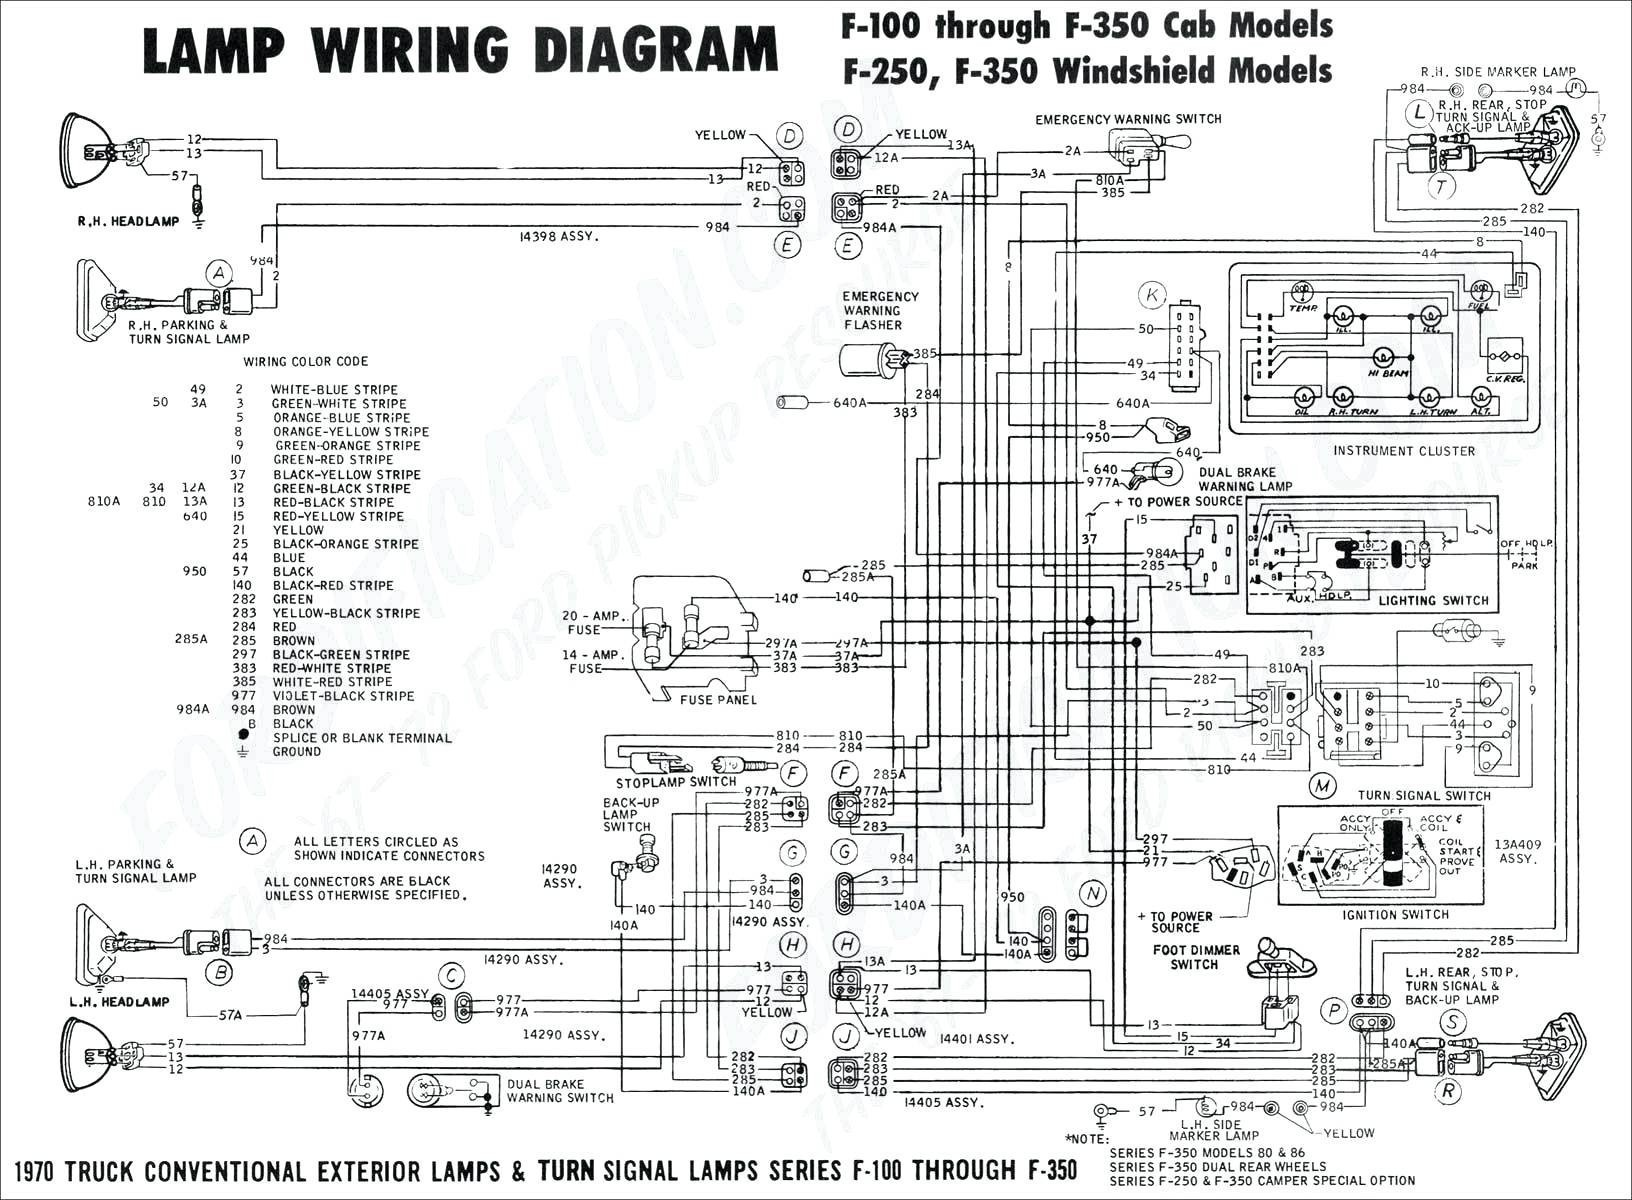 67 Camaro Wiring Diagram 69 Camaro Windshield Wiper Wiring Diagram Worksheet and Wiring Of 67 Camaro Wiring Diagram